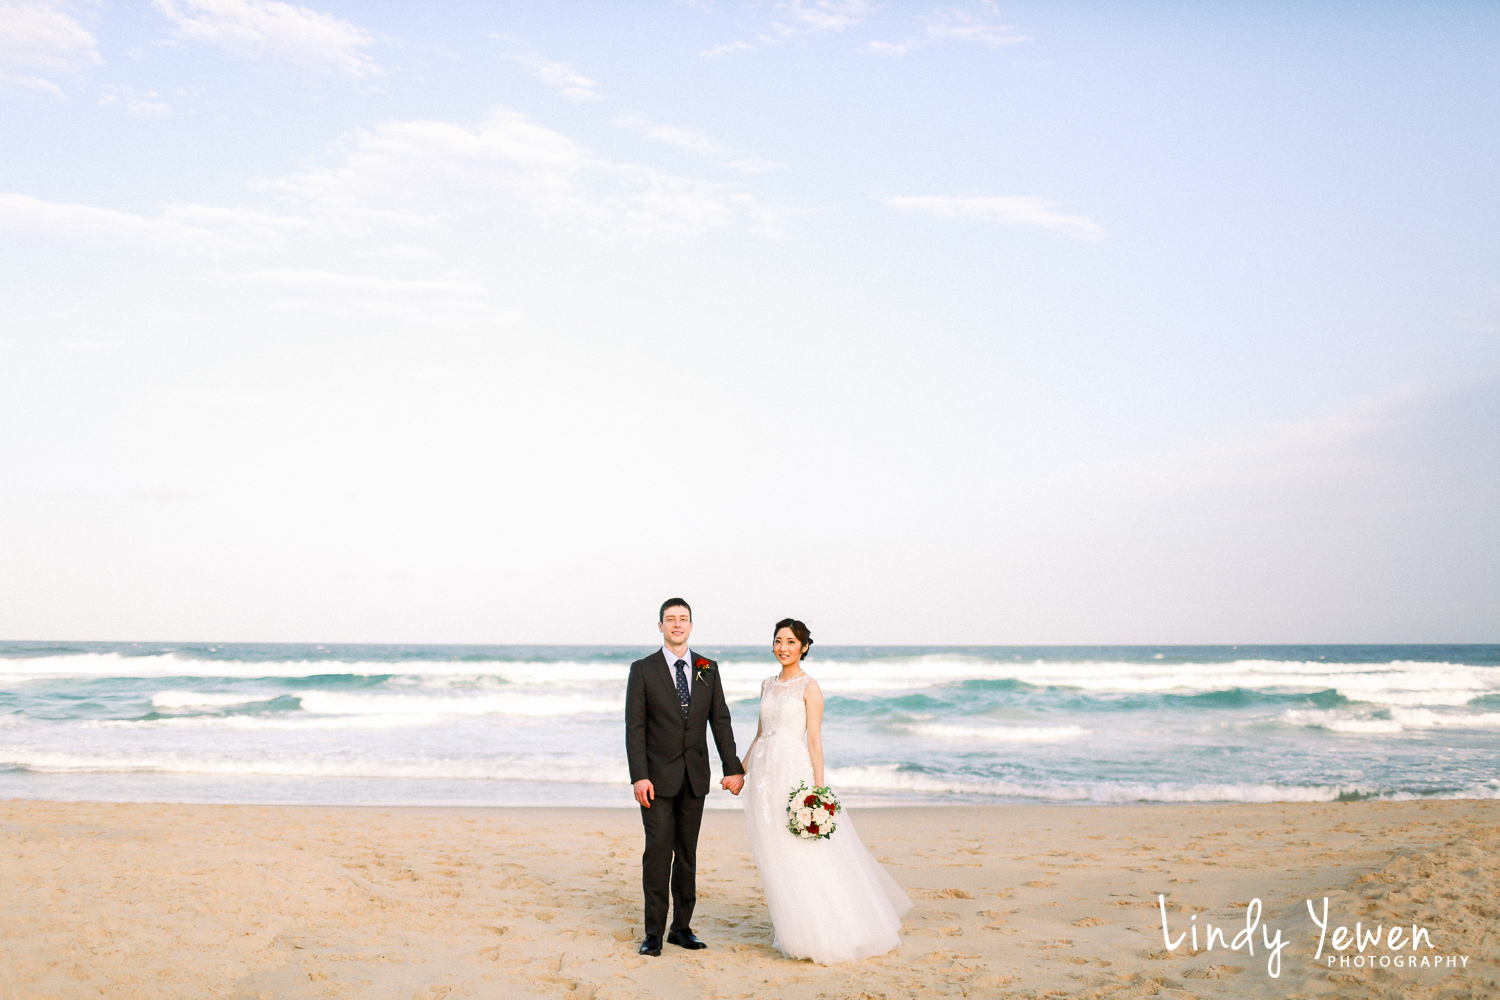 Sunshine-Beach-Weddings-Dimitrije-Maria 127.jpg